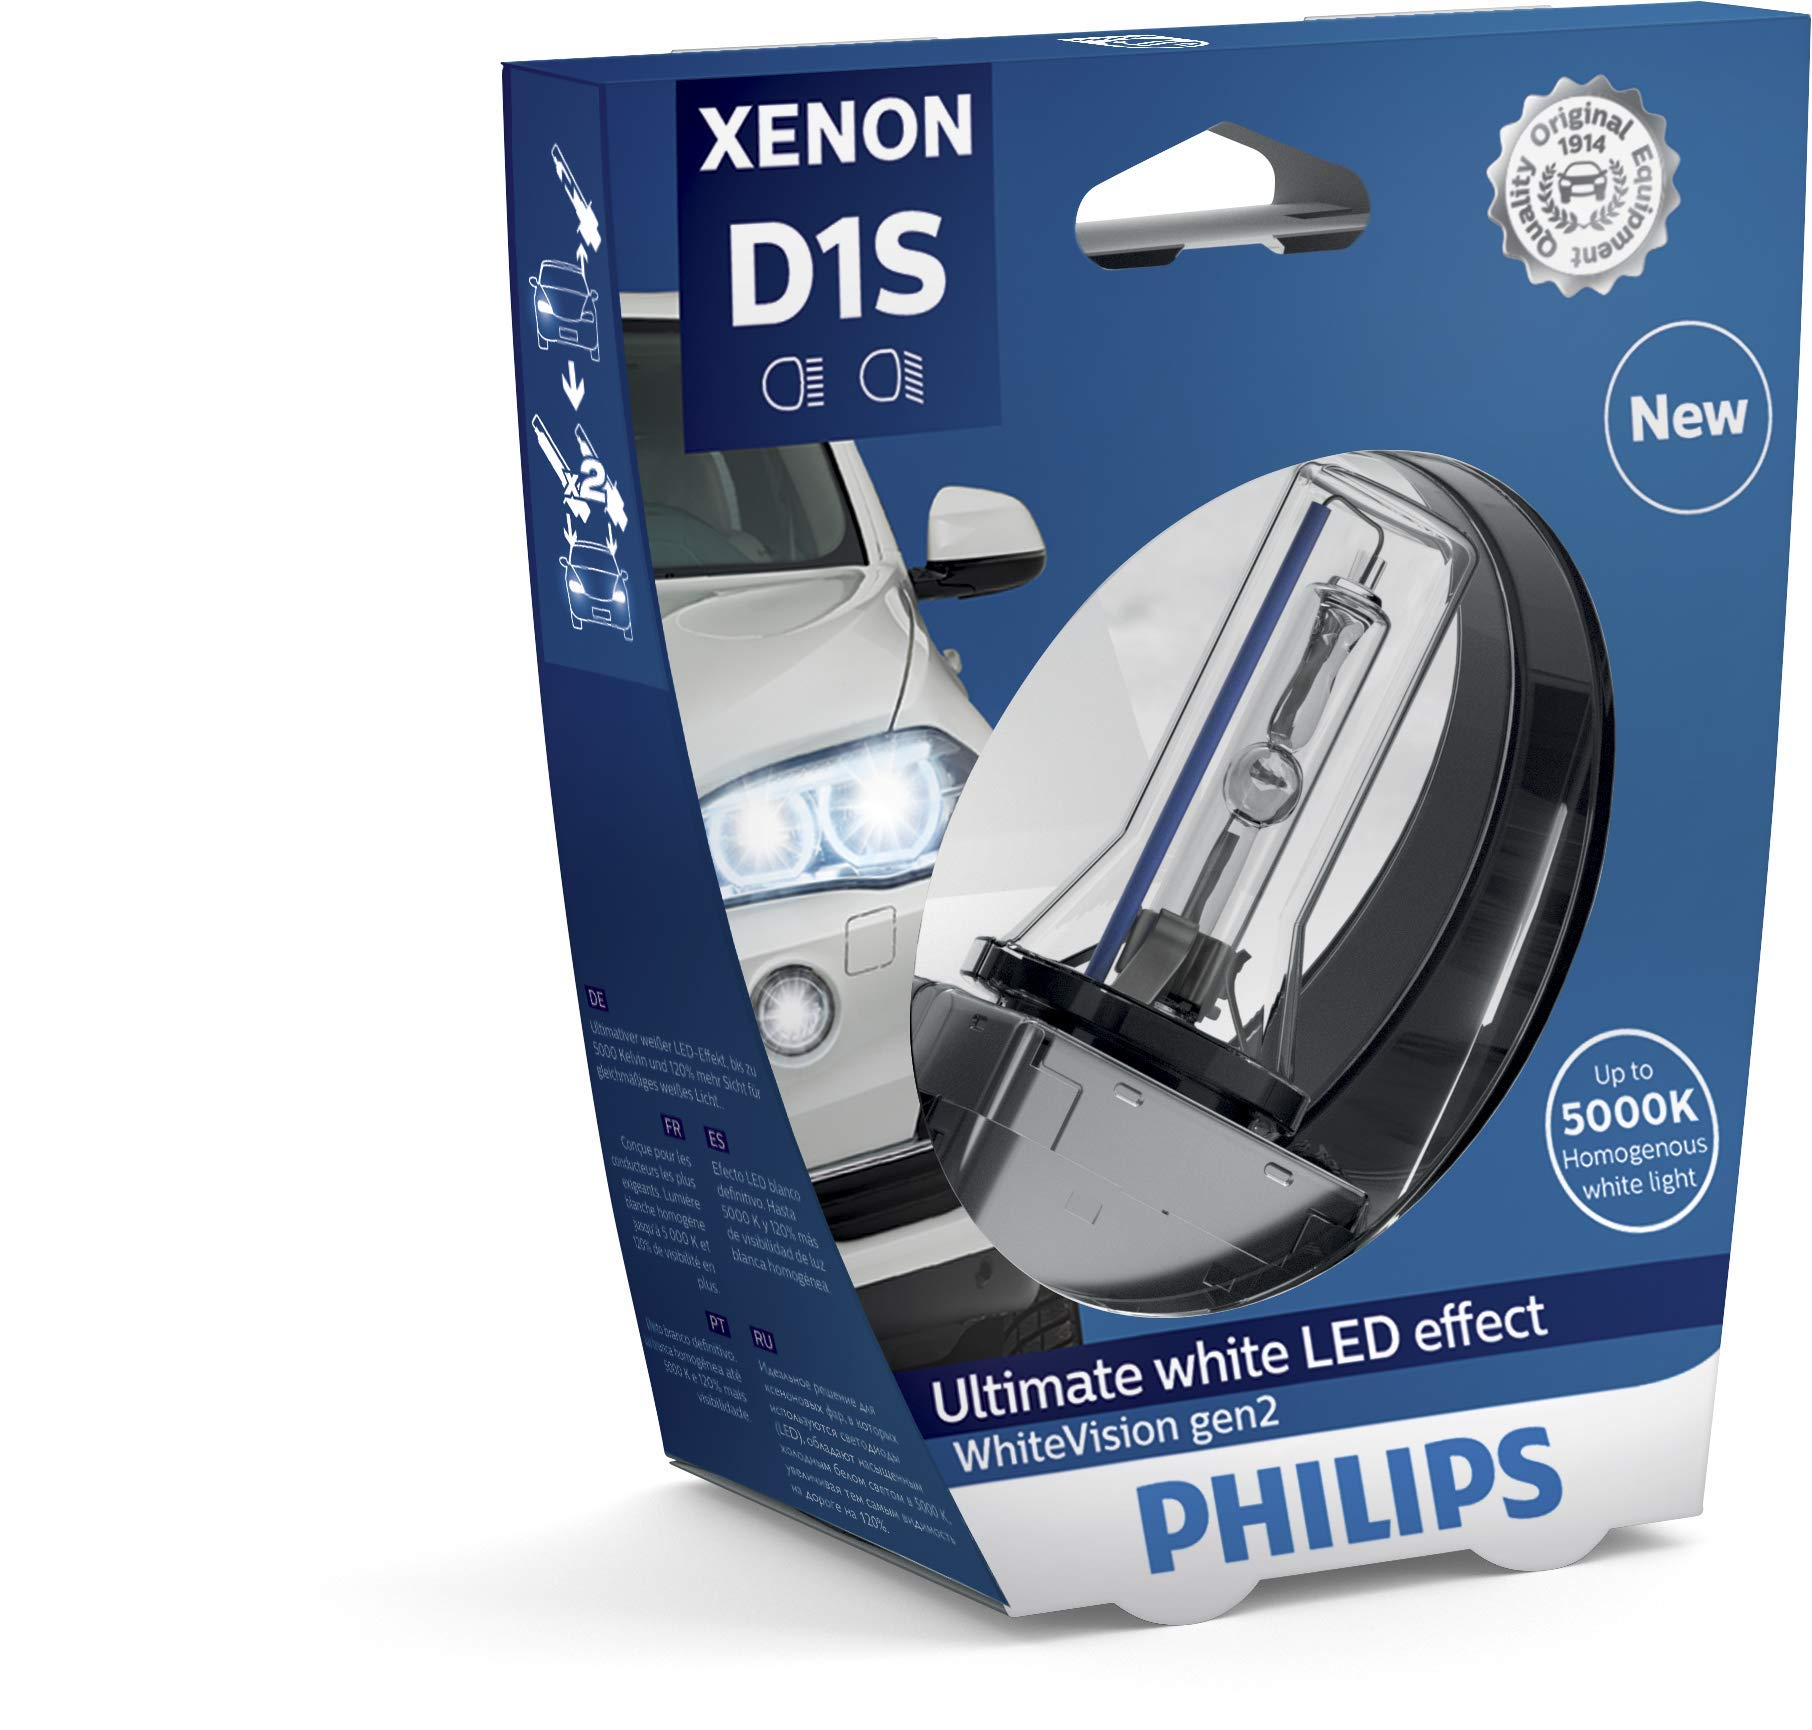 Philips 85415WHV2S1 Xenon-Scheinwerferlampe WhiteVision D1S Gen2, Einzelblister von Philips automotive lighting